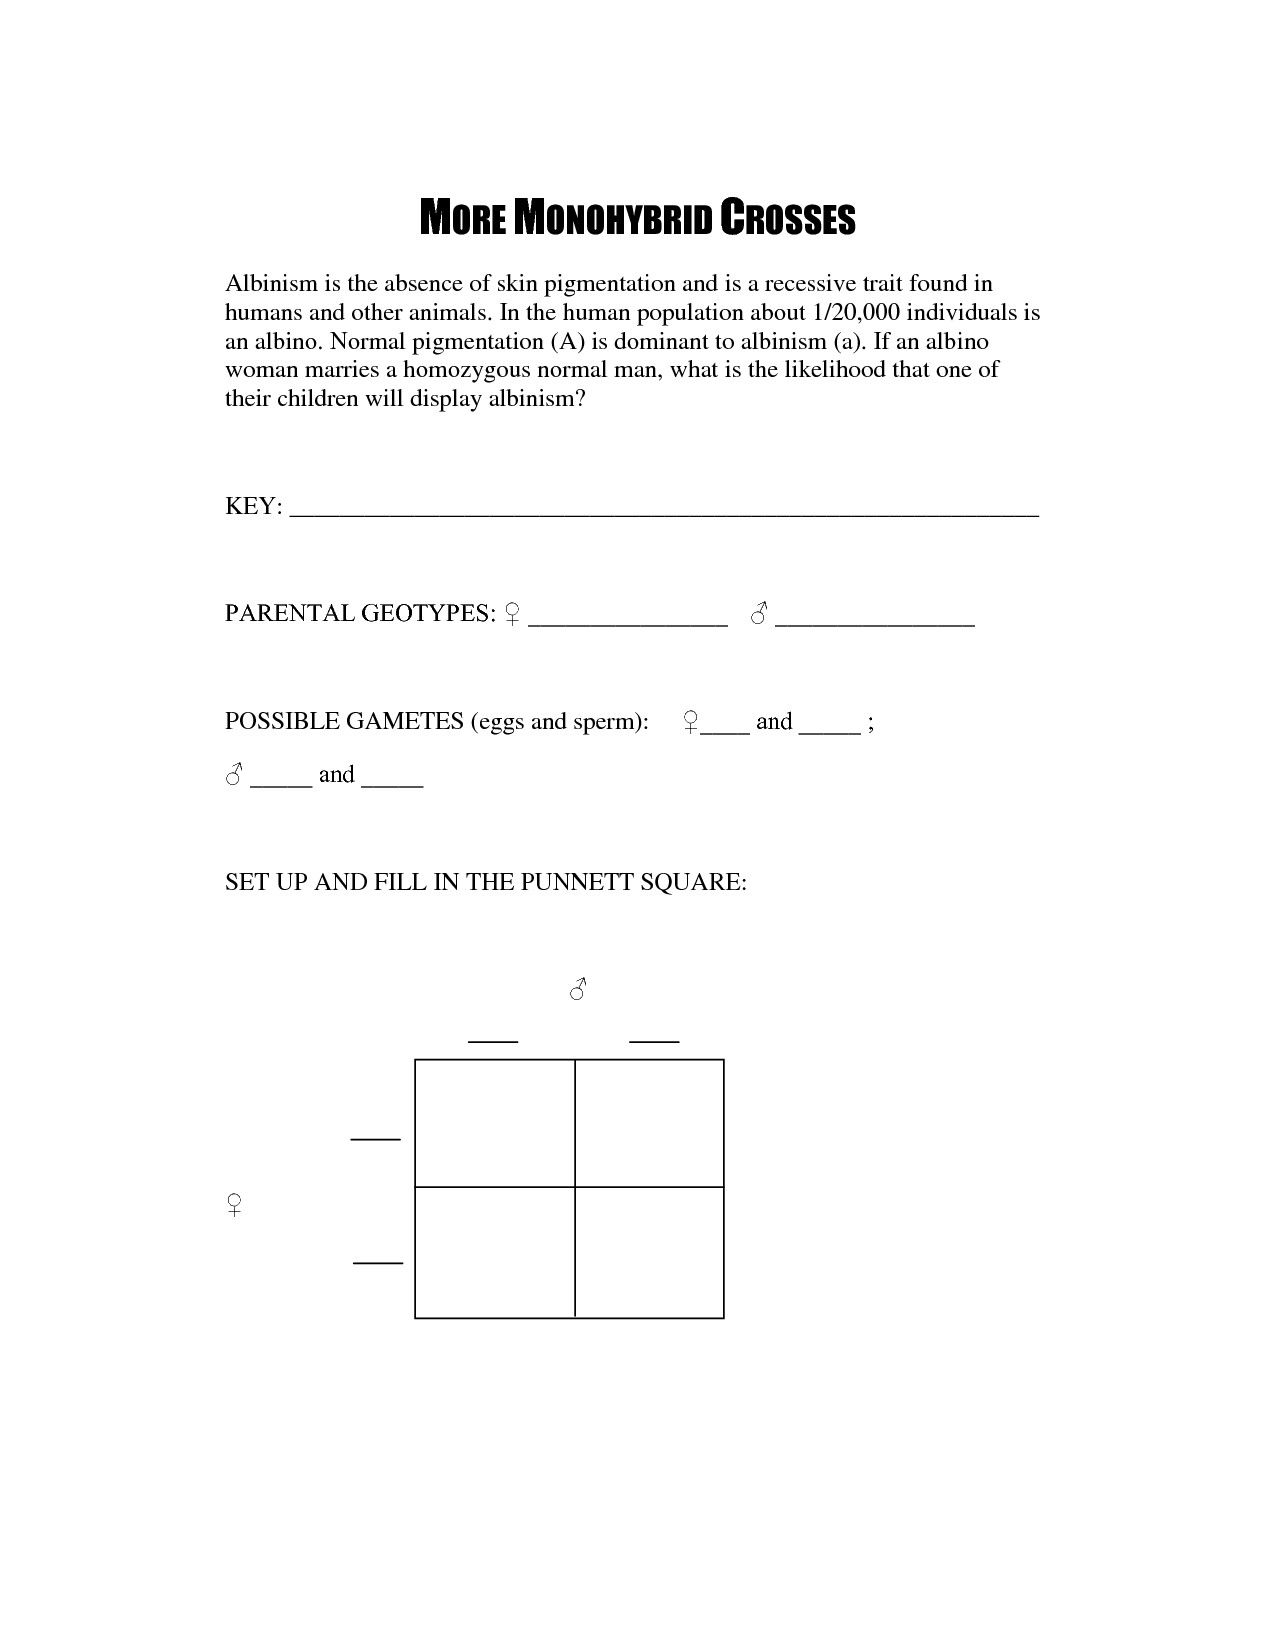 Sickle Cell Anemia Worksheet Answers